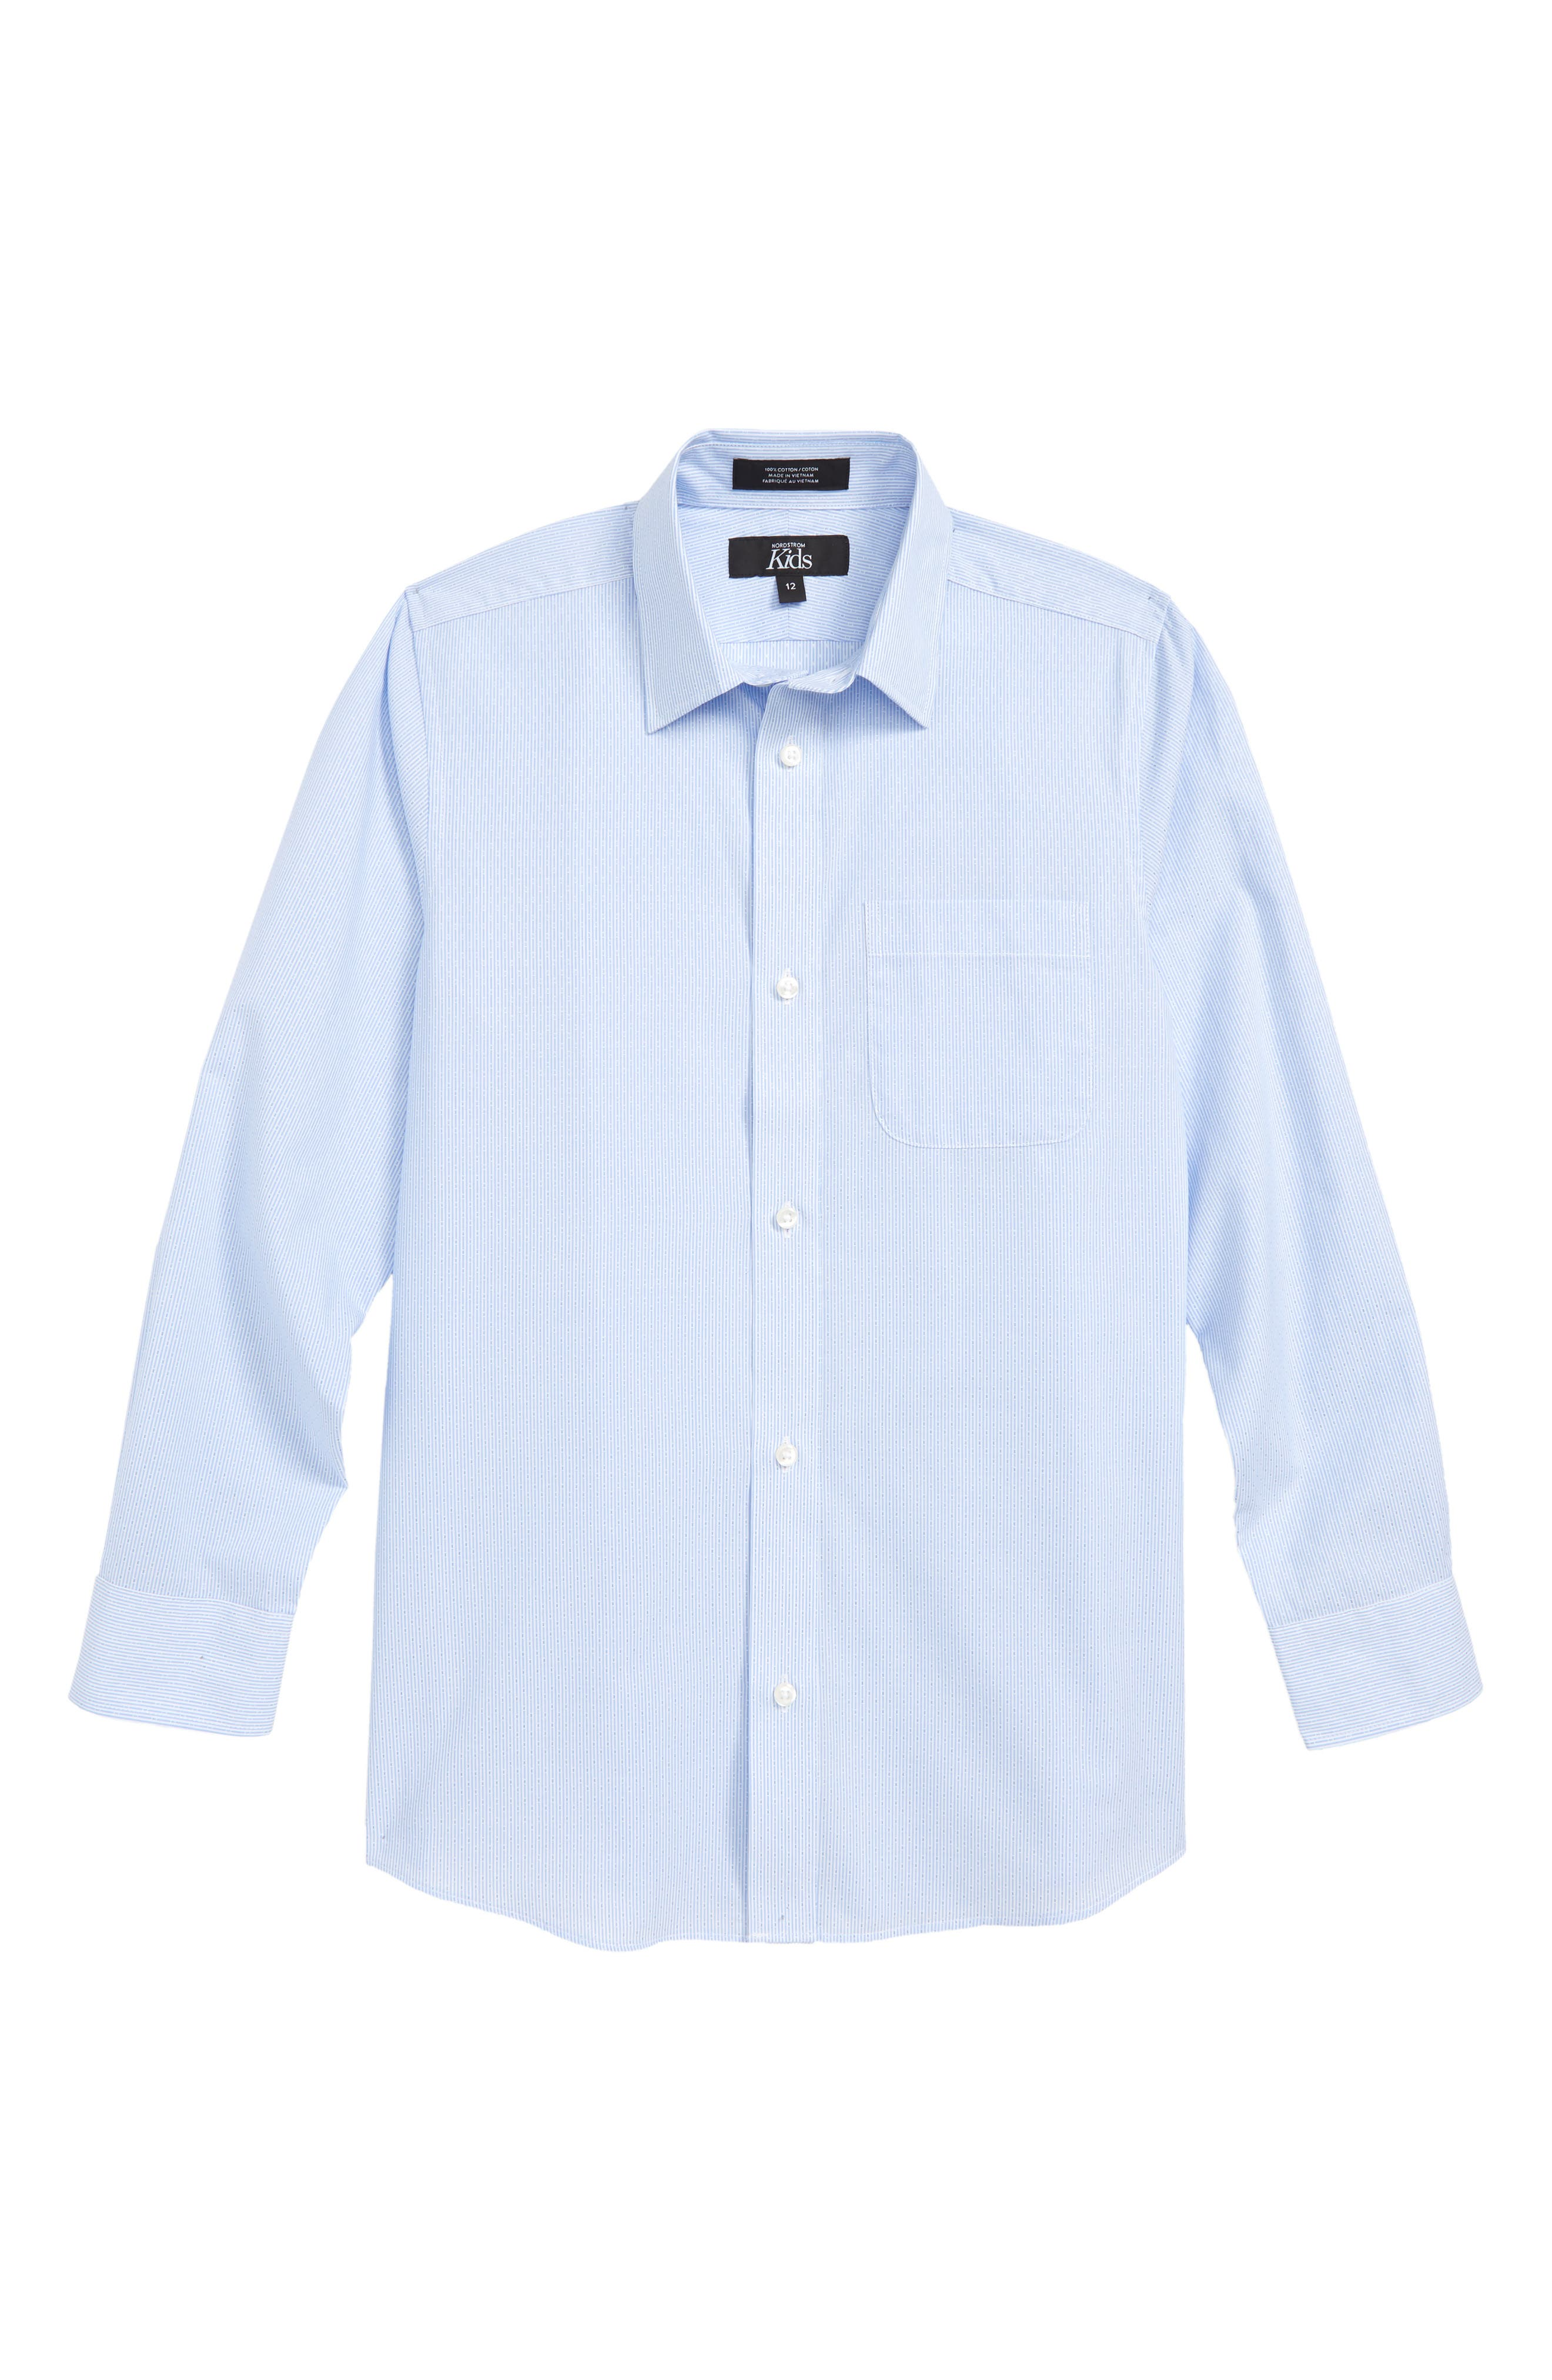 Robbia Dobby Dress Shirt,                             Main thumbnail 1, color,                             BLUE ROBBIA- WHITE DOBBY